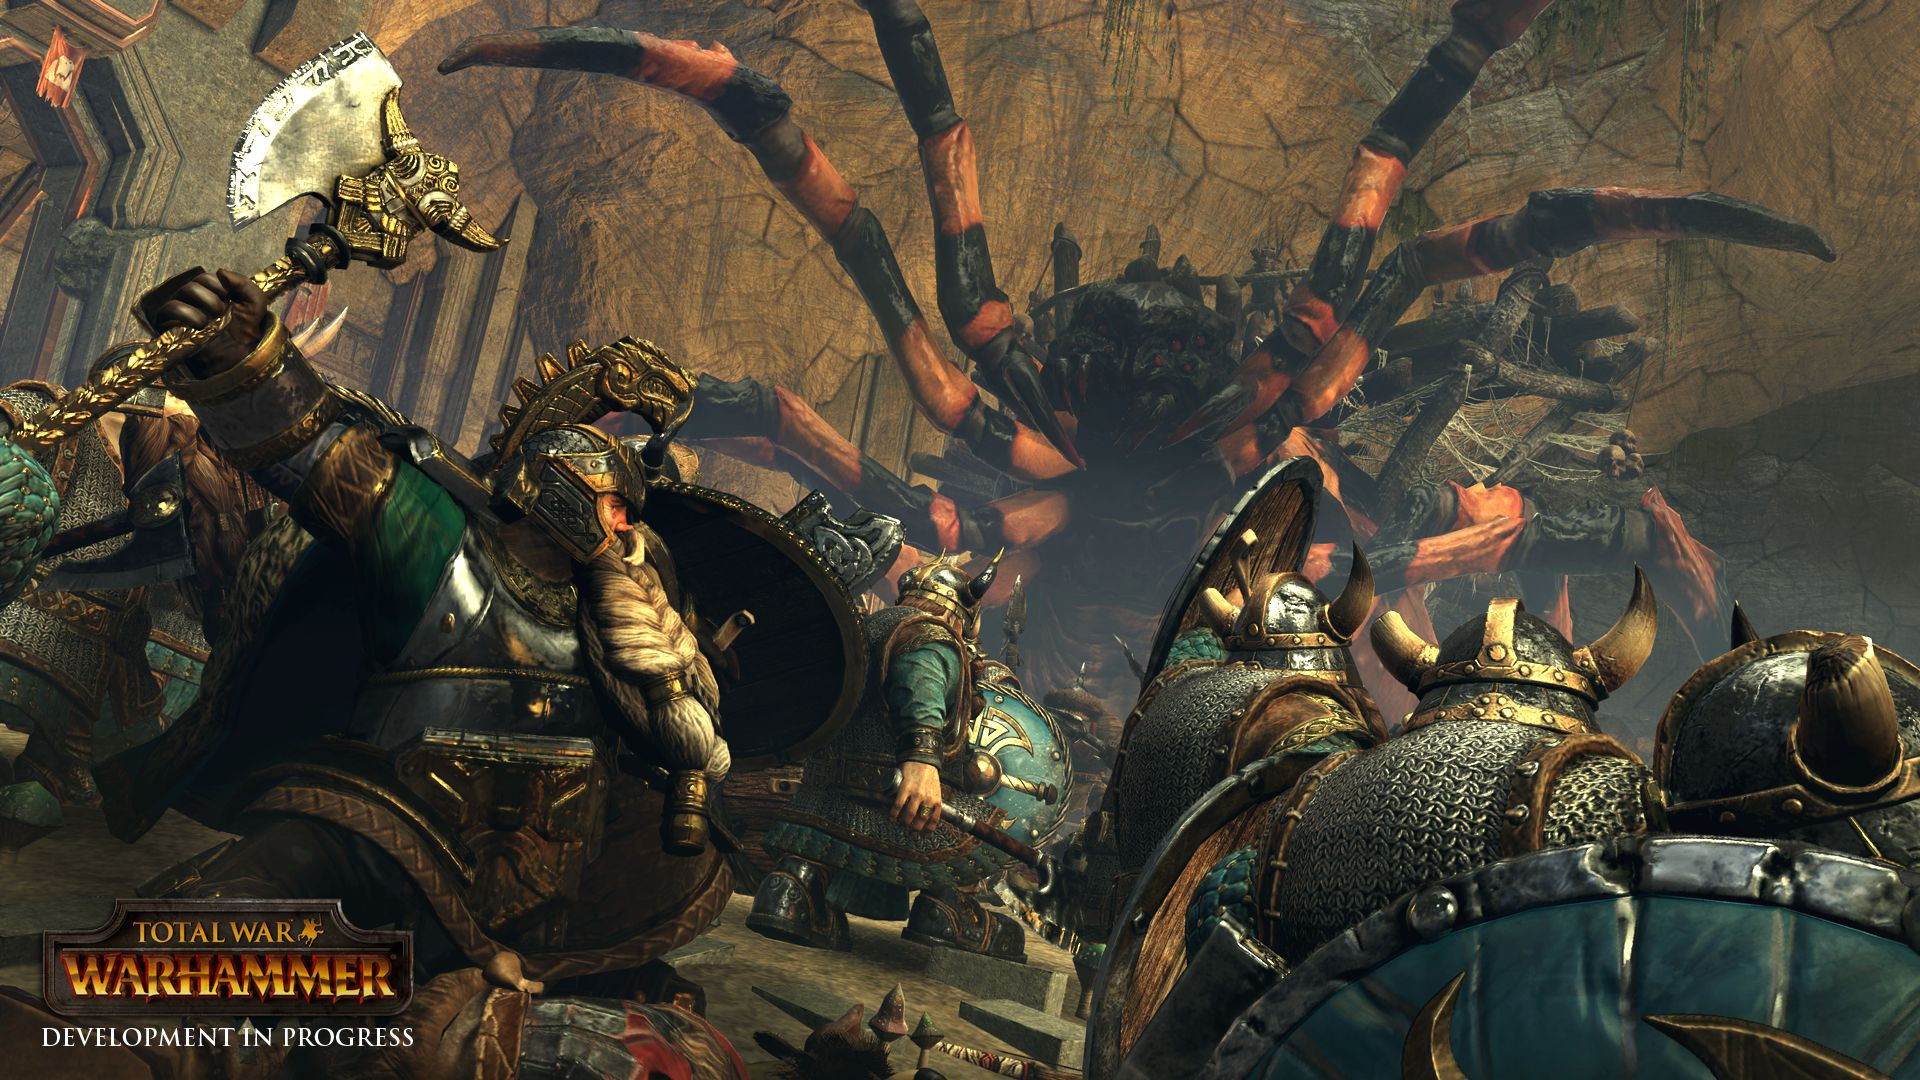 Total War: Warhammer Pictures